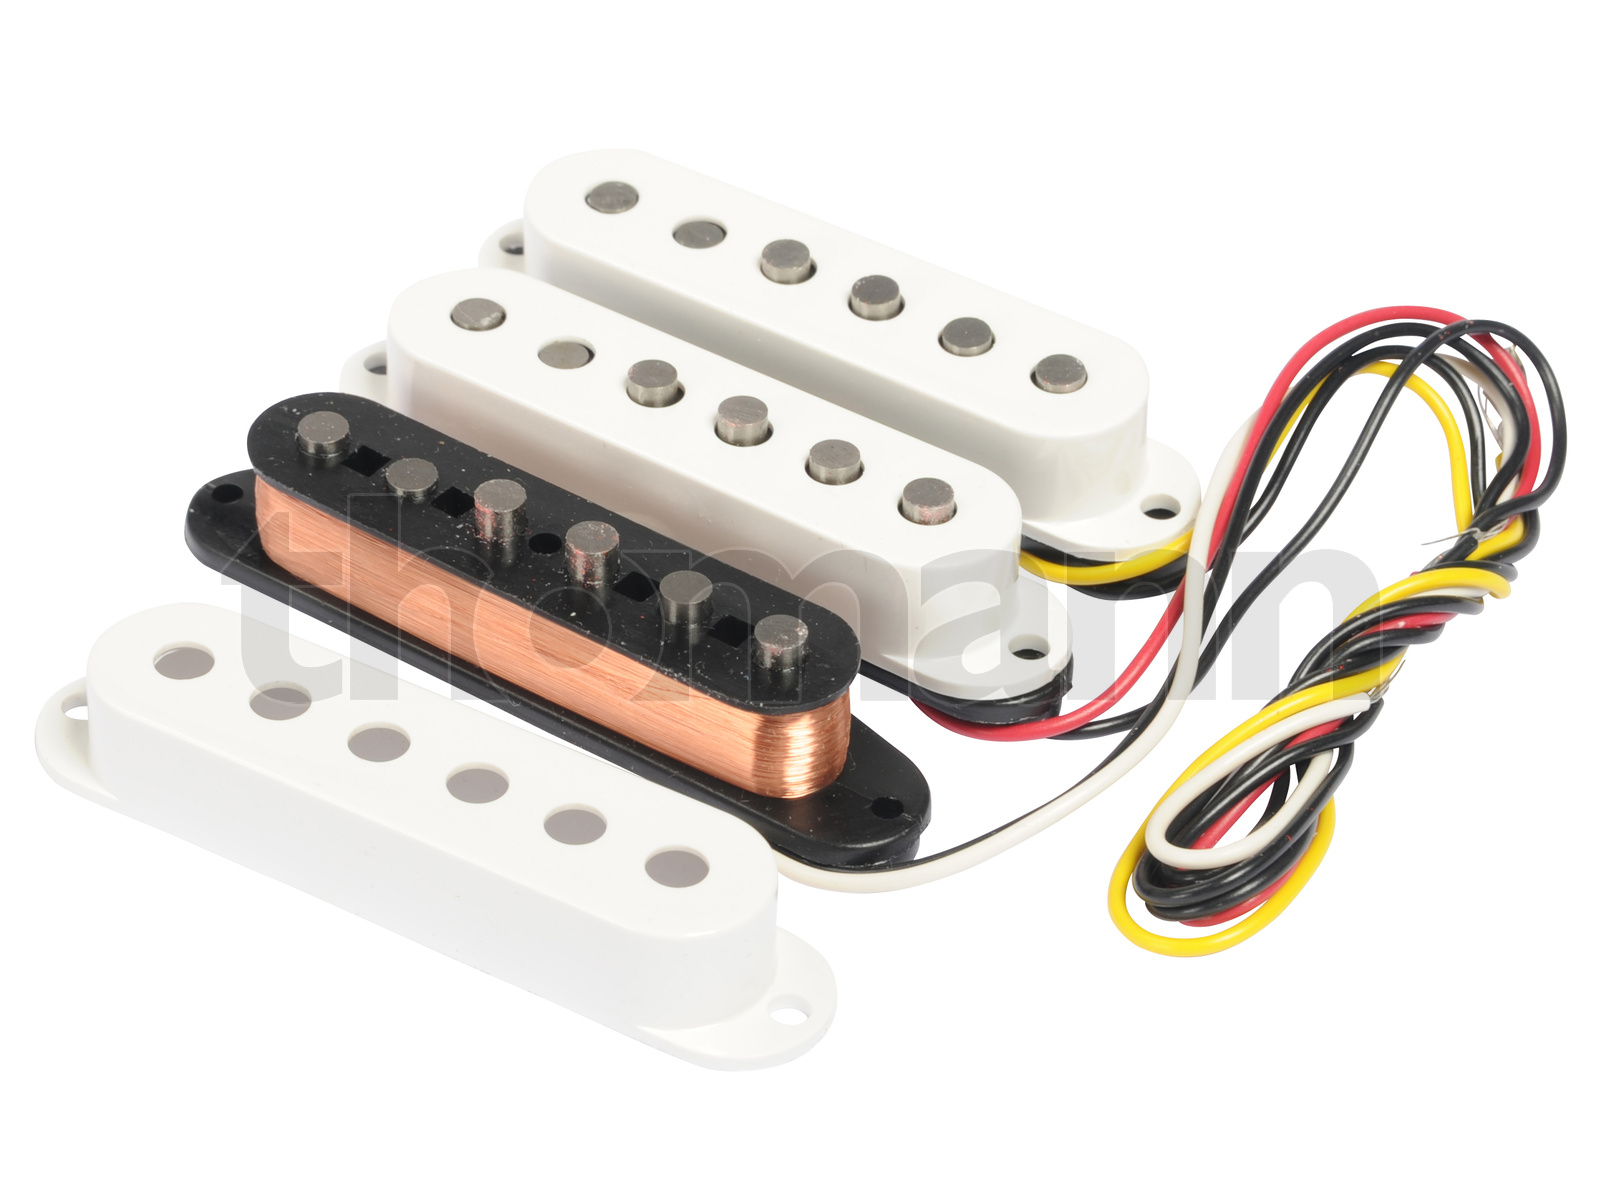 fender tex mex strat pickups 612246 fender tex mex strat pickups image ( 612246) audiofanzine fender tex mex pickup wiring diagram at edmiracle.co